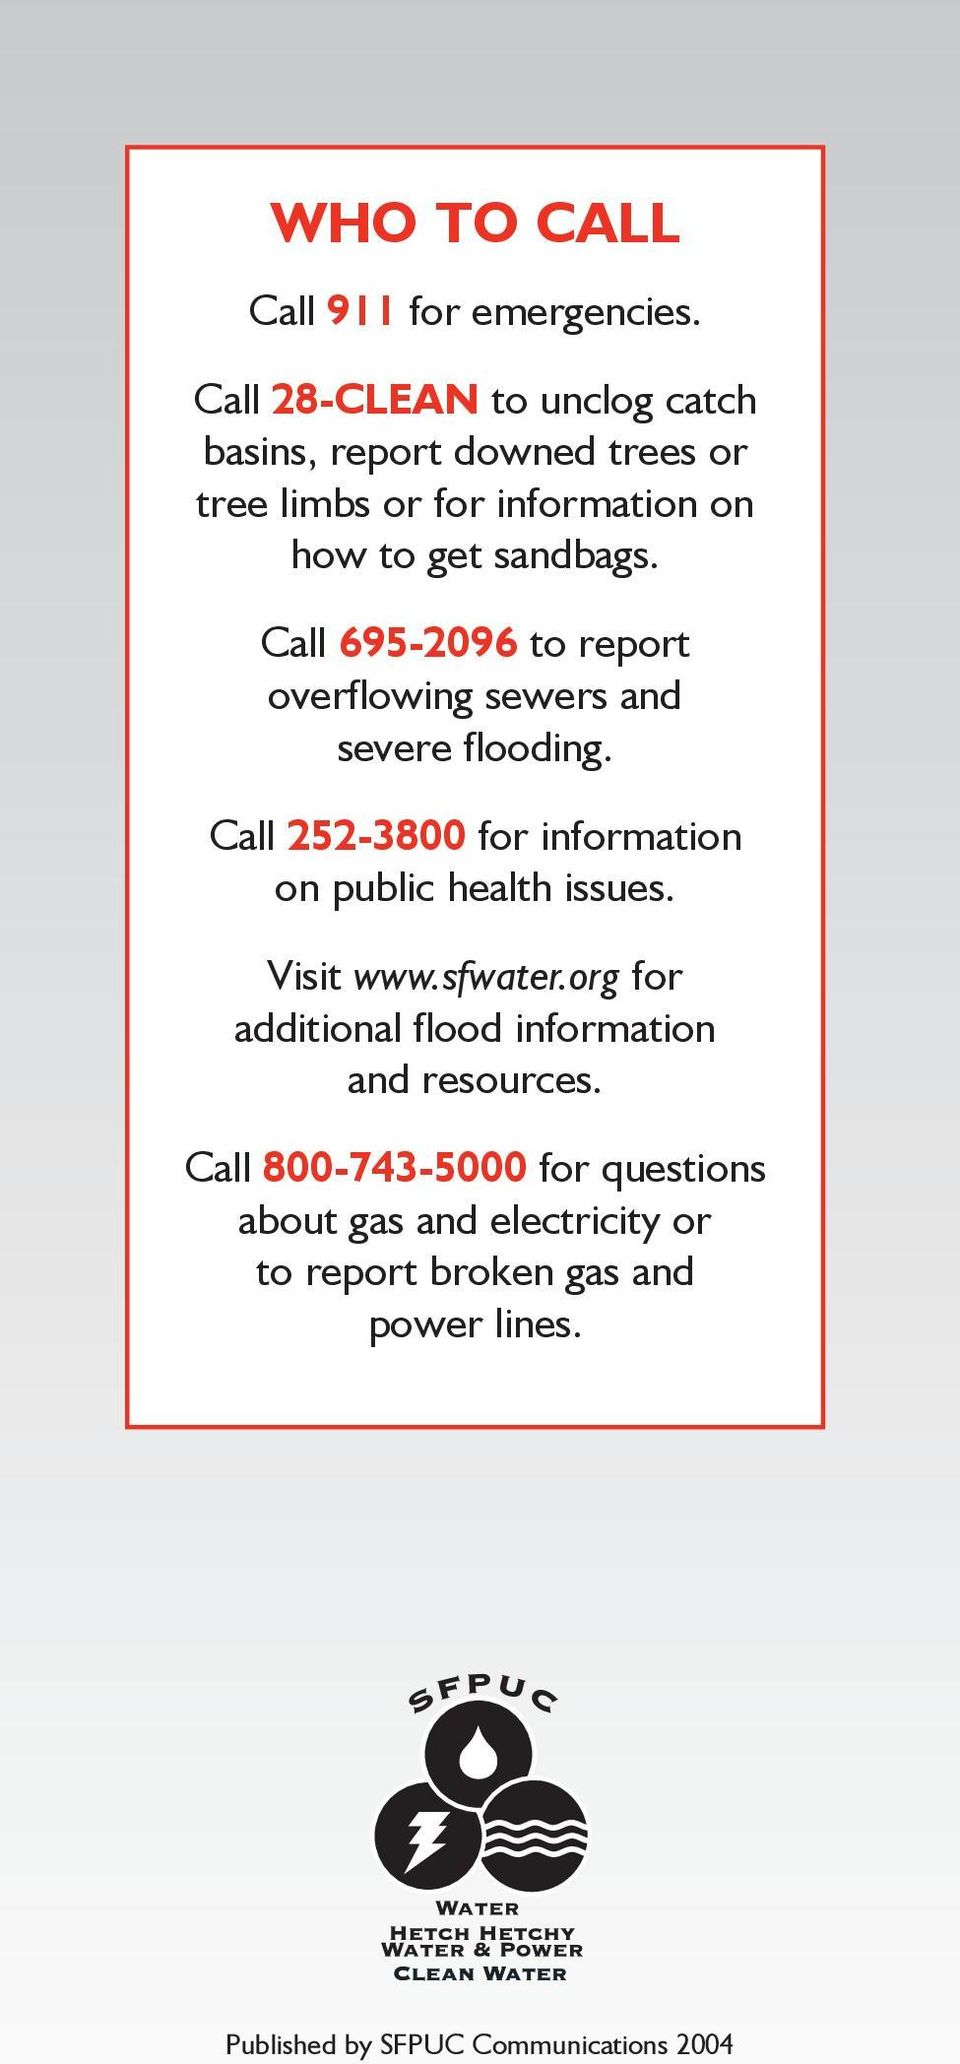 Call 695-2096 to report overflowing sewers and severe flooding. Call 252-3800 for information on public health issues.